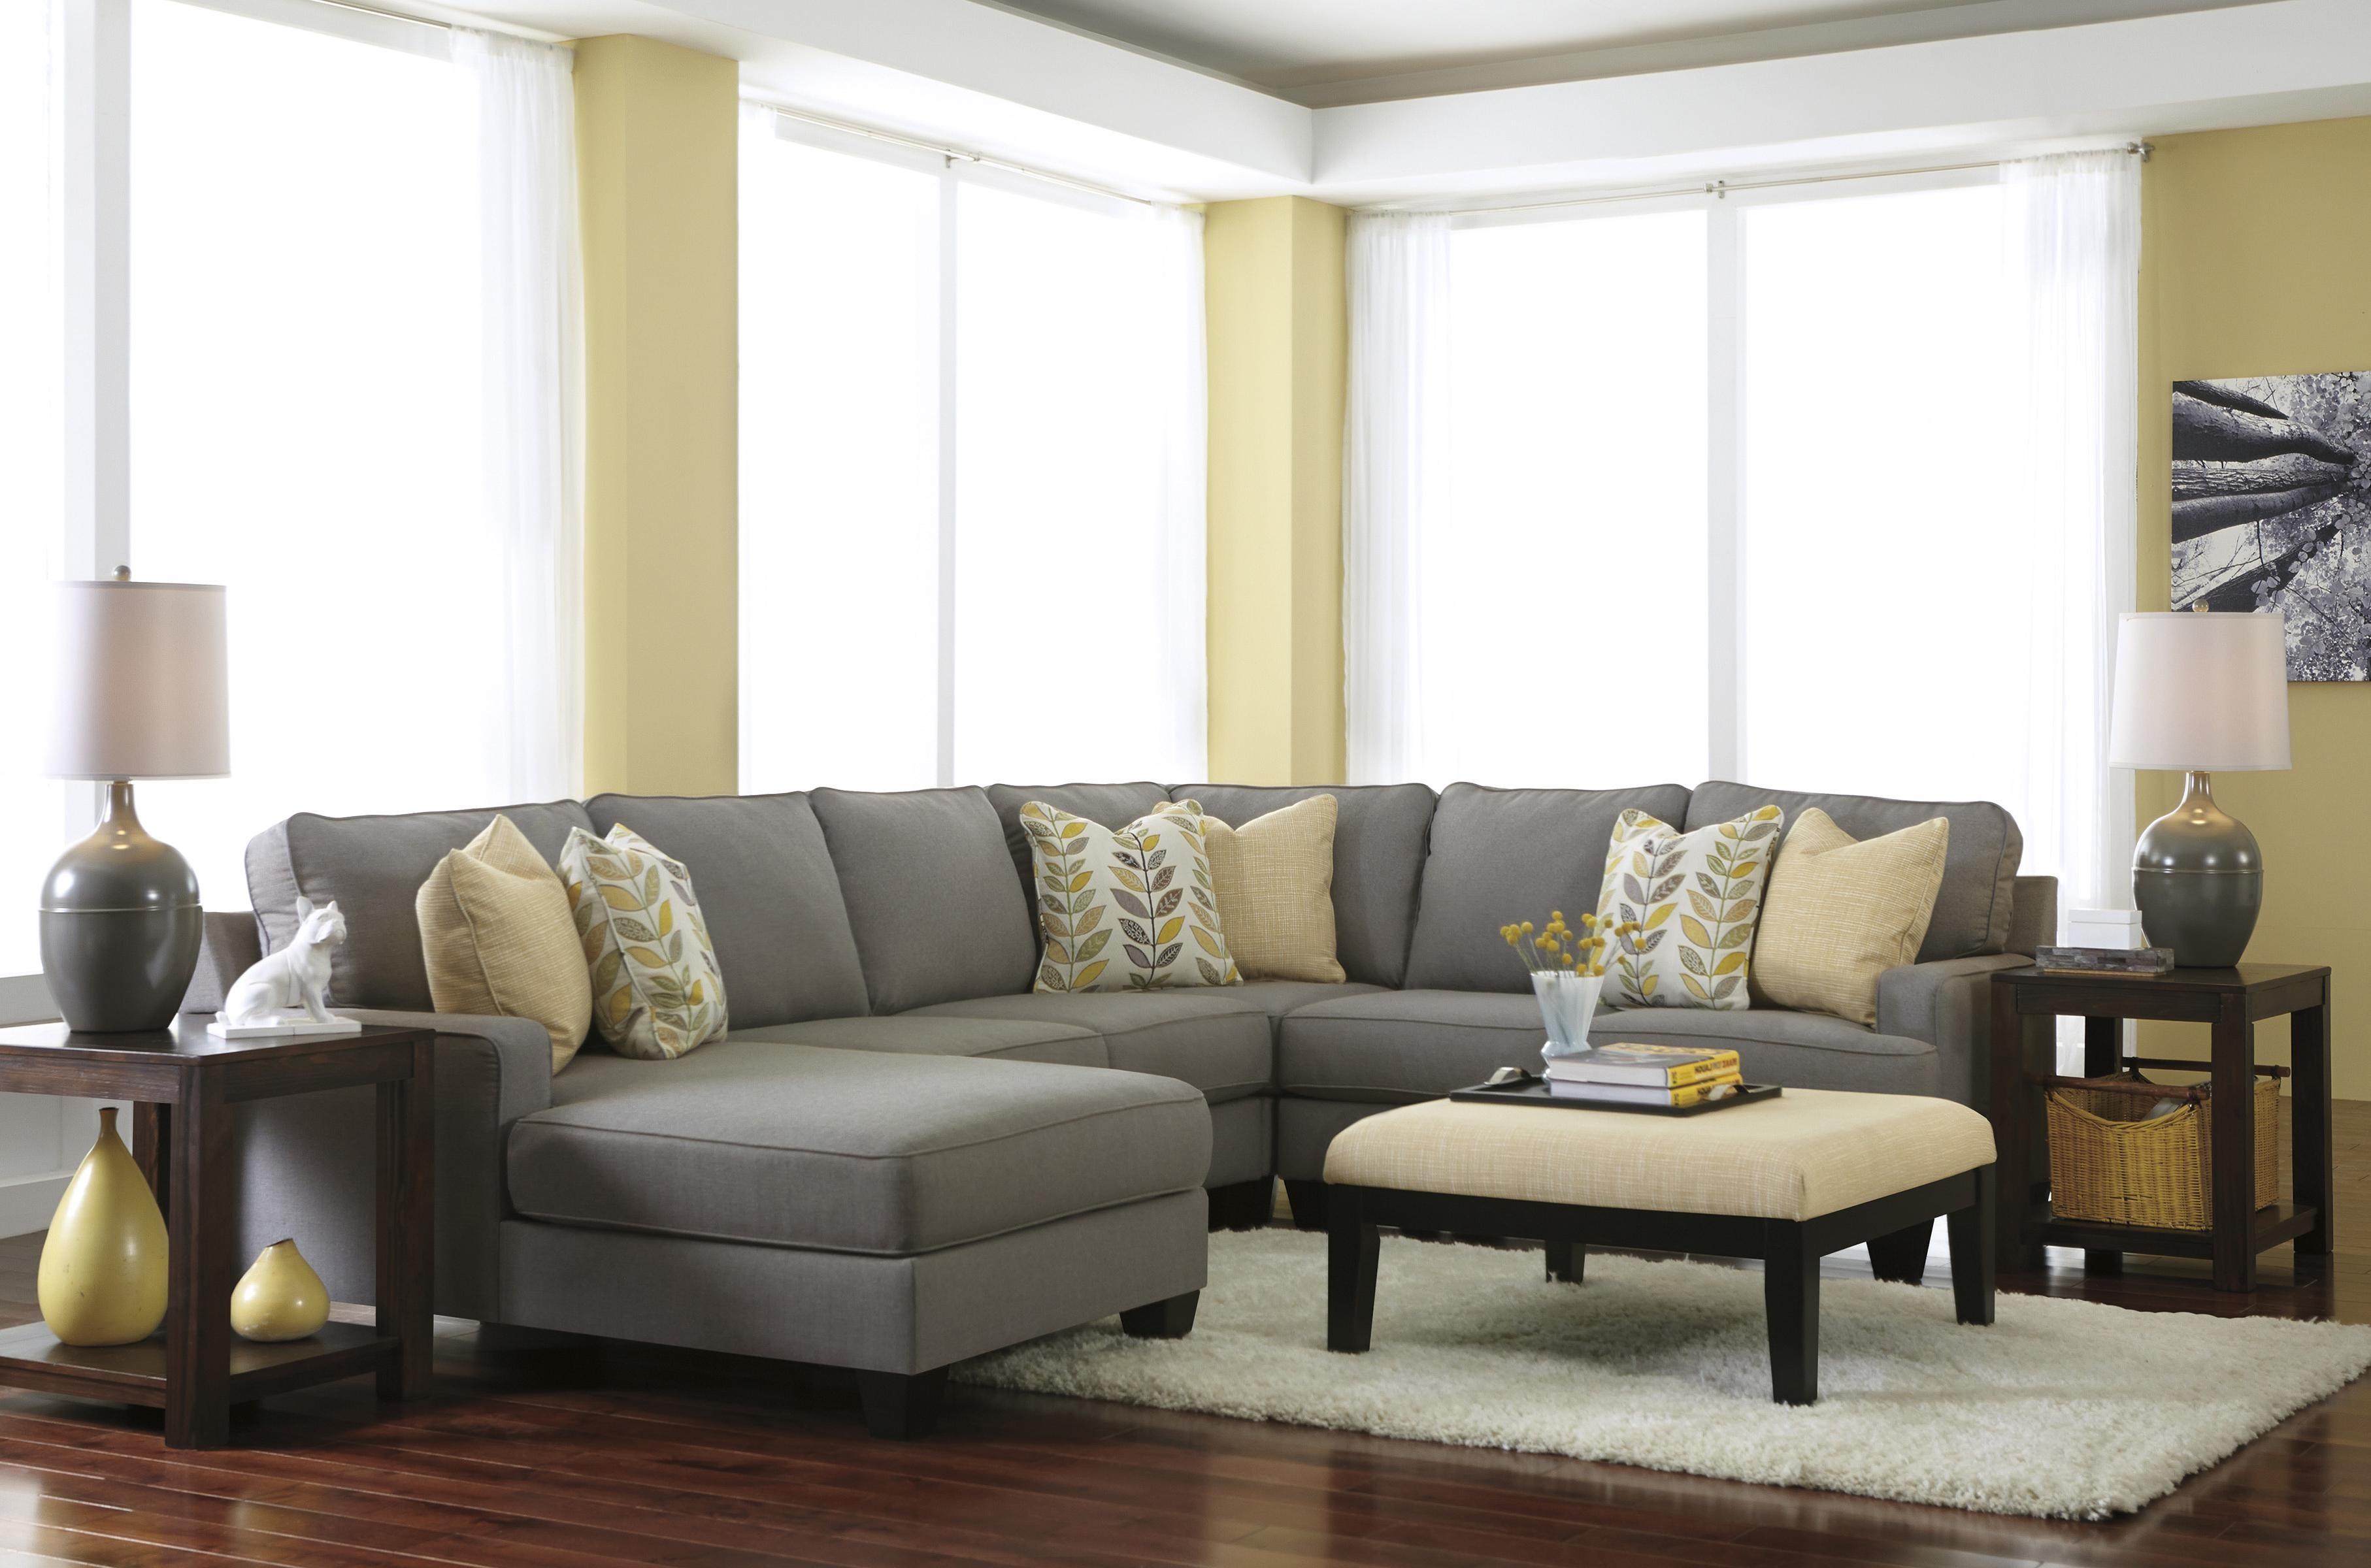 Signature design by ashley chamberly alloy modern 4 for Ashley sectional sofa with chaise